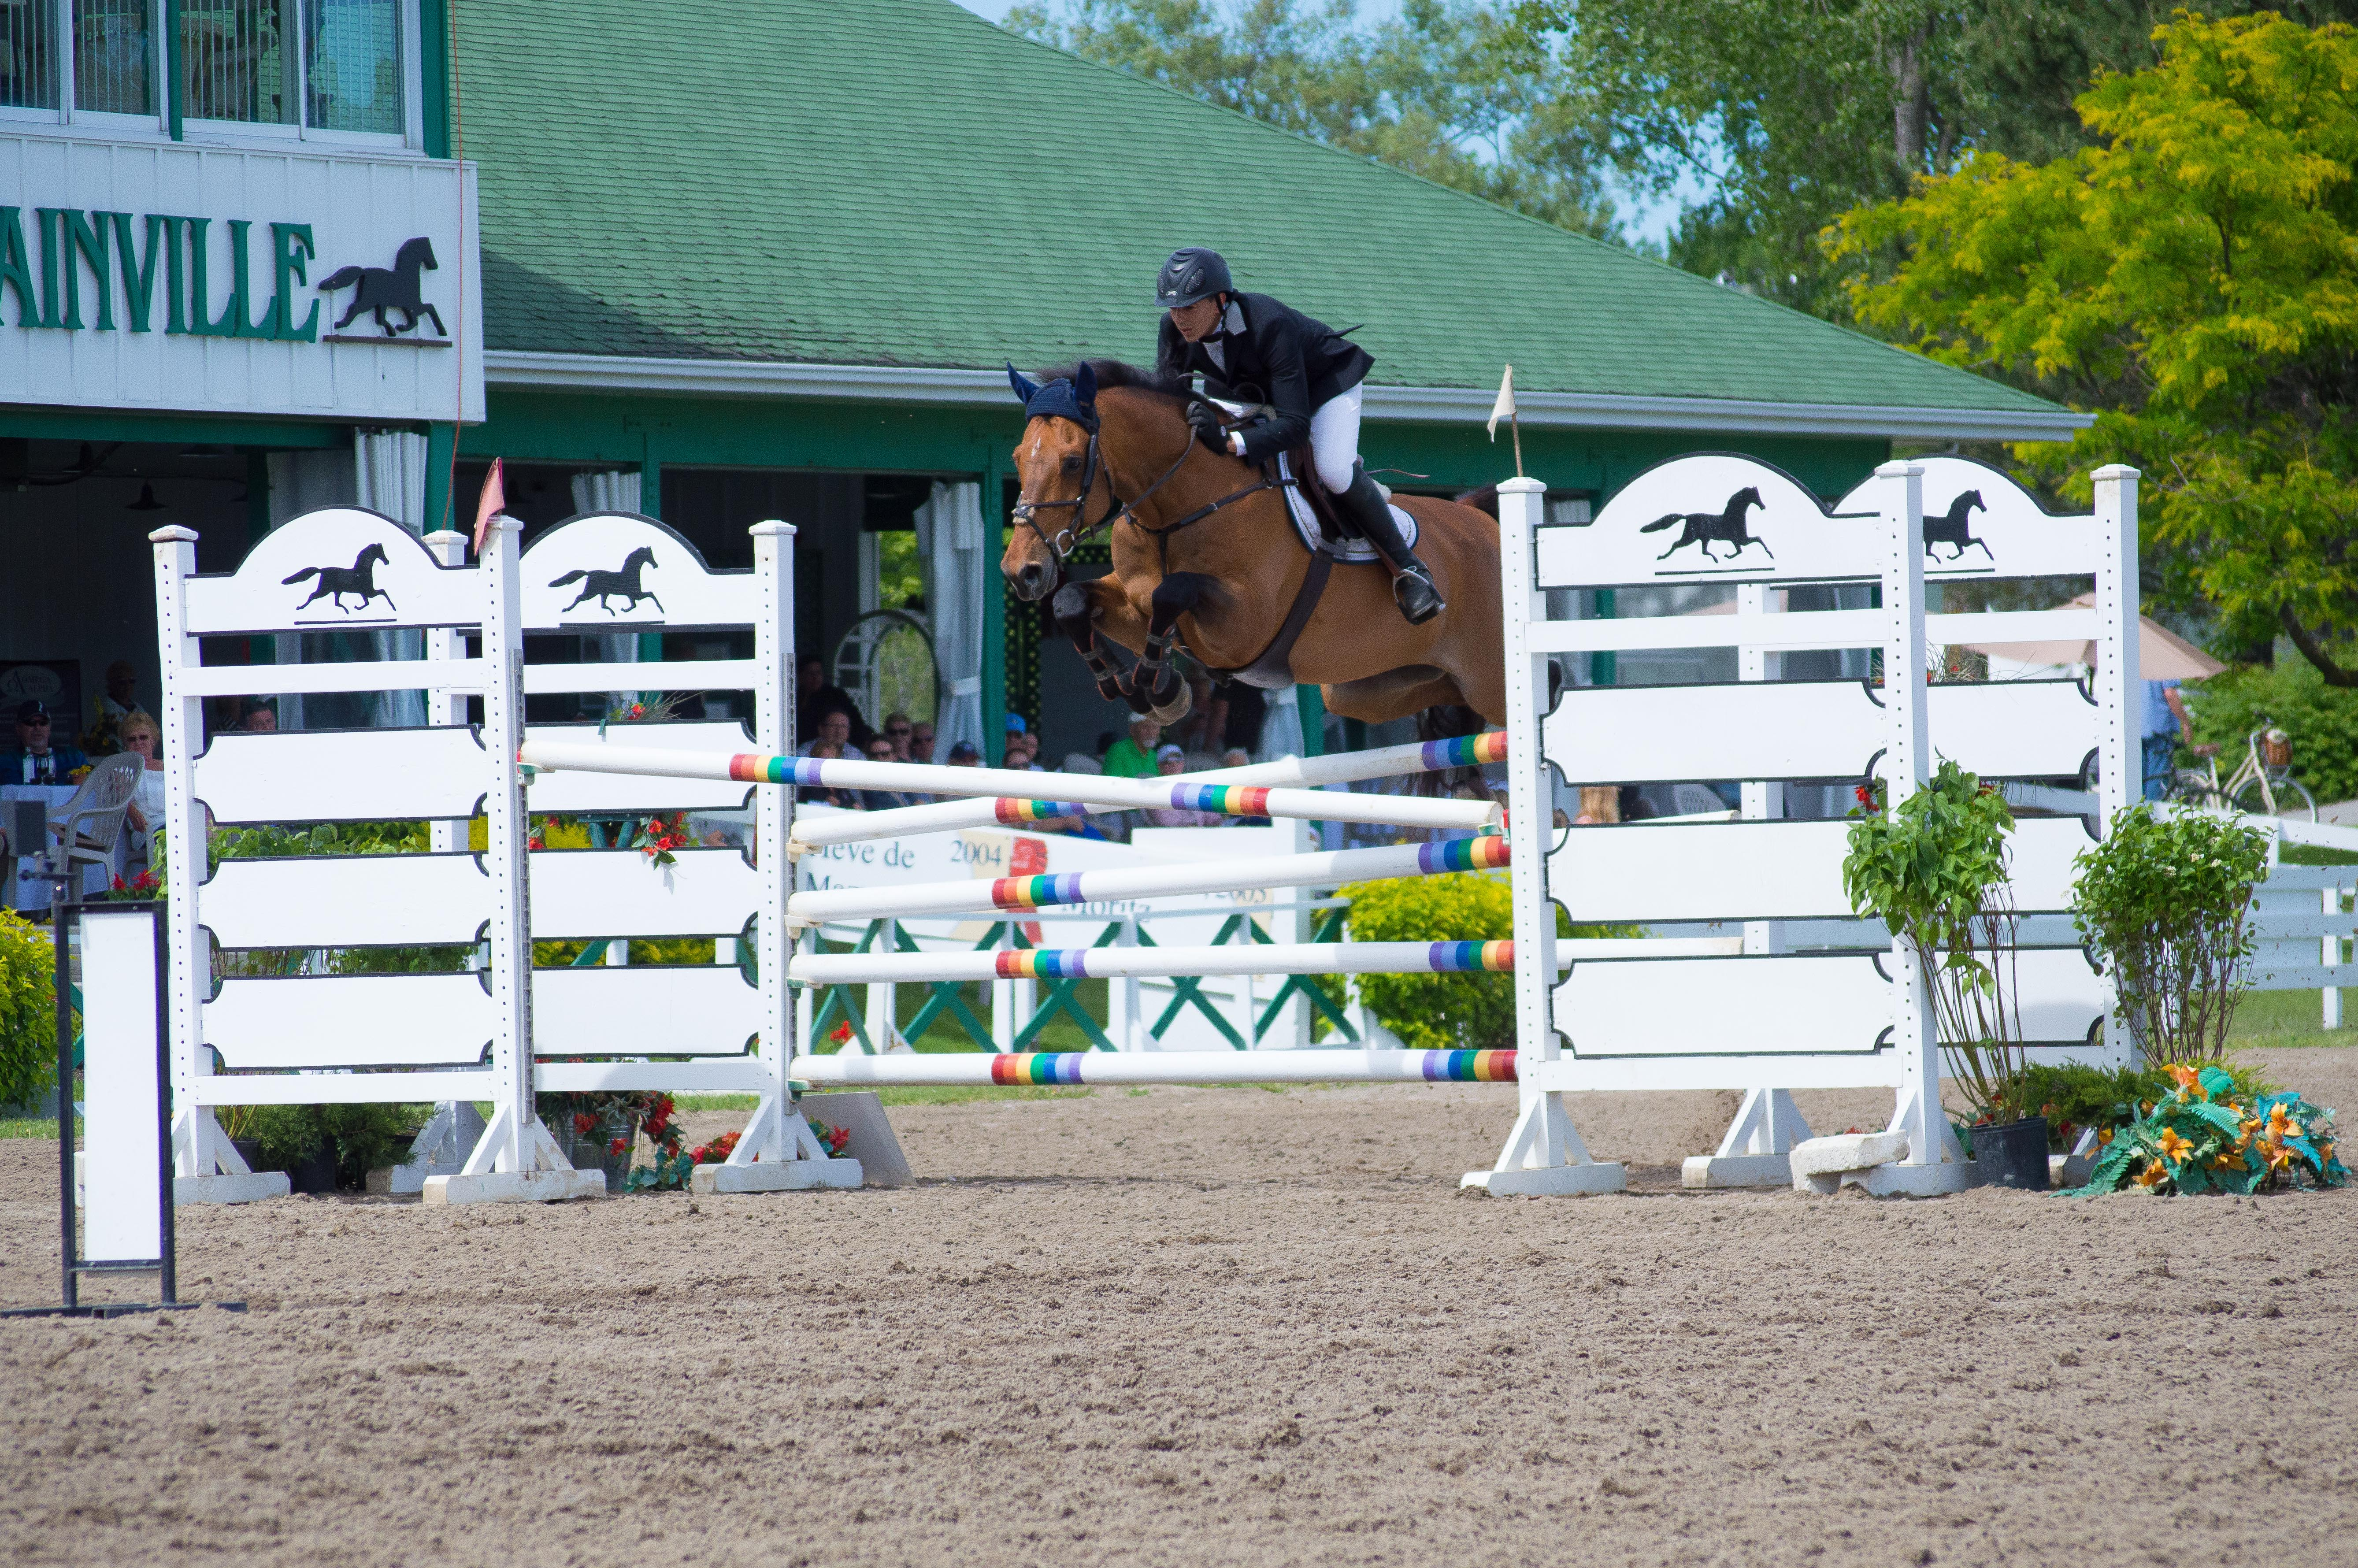 Blainville Equestrian Park plays host to many show-jumping competitions during the season. Photo by Kennedy Simpson.